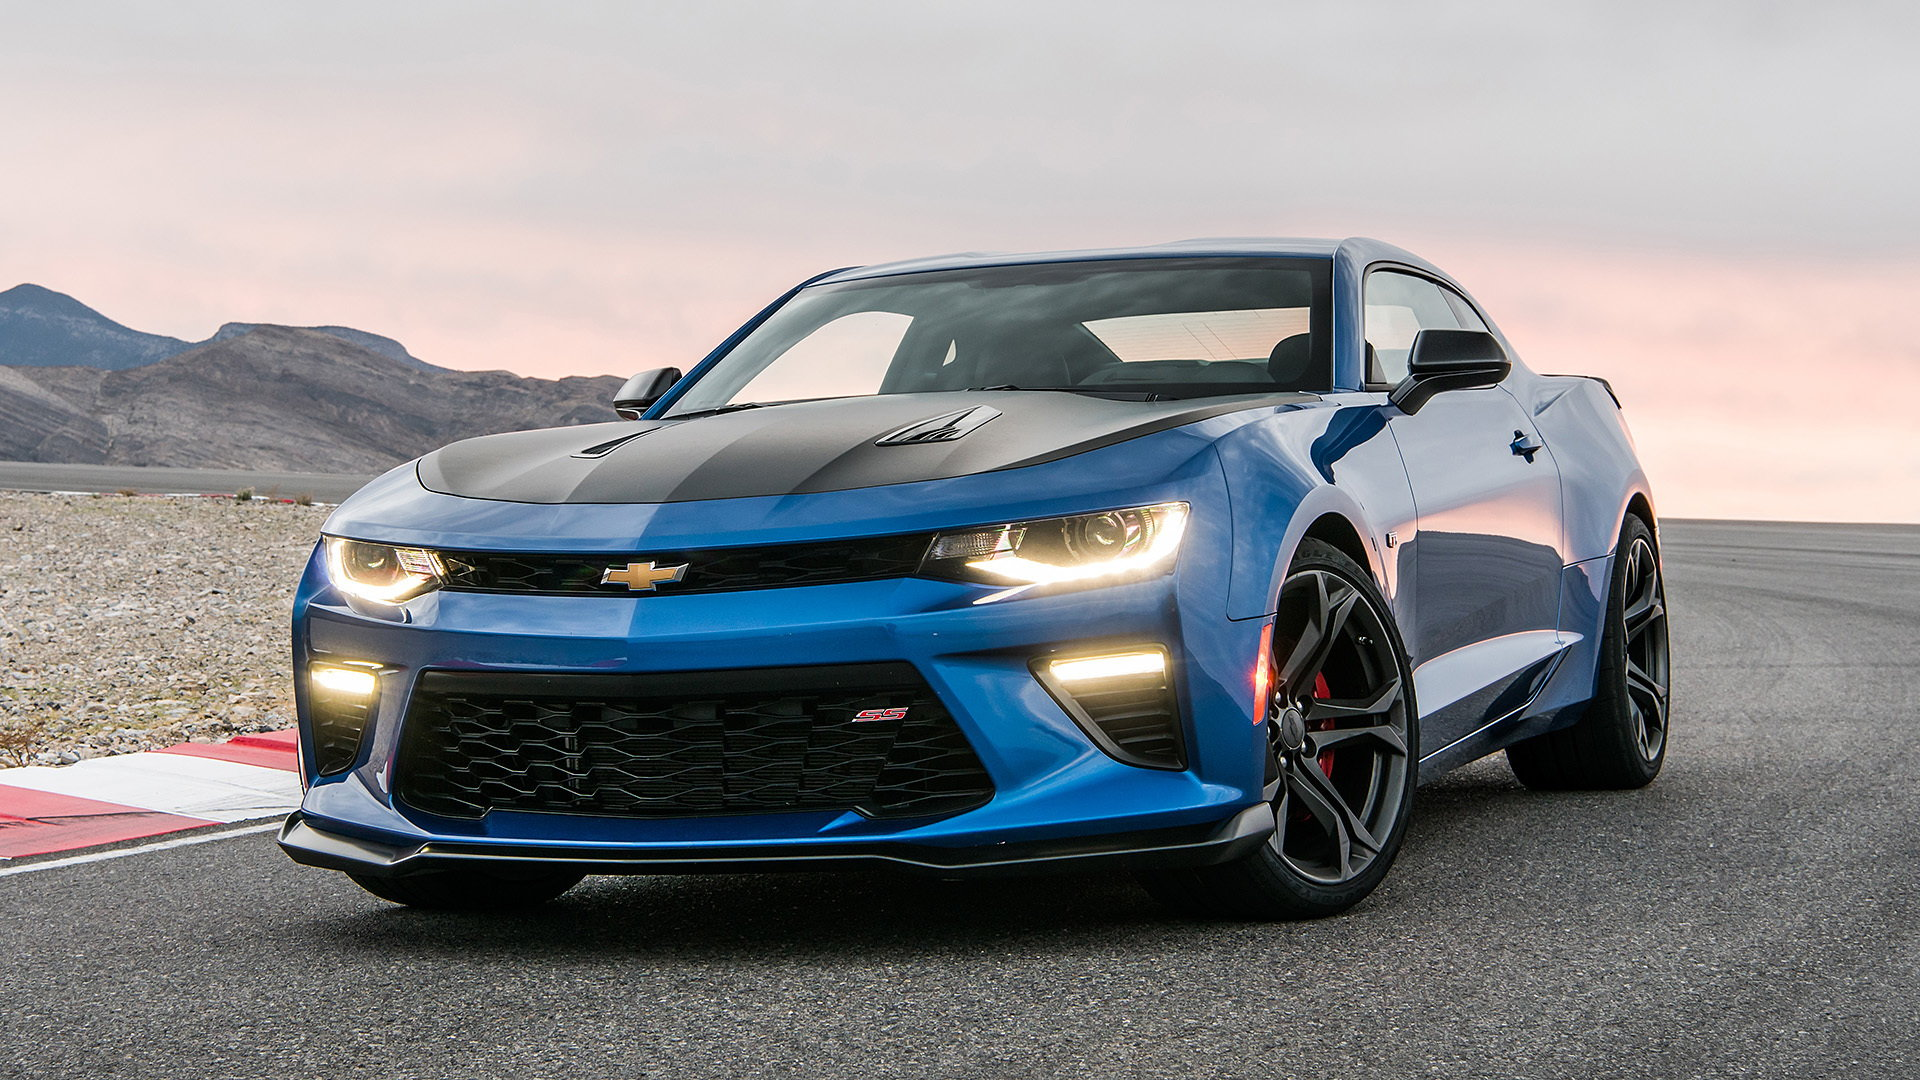 Buy Used Cars Toronto >> Looking to buy a 6th gen Camaro, possibly 5th gen. - Page ...